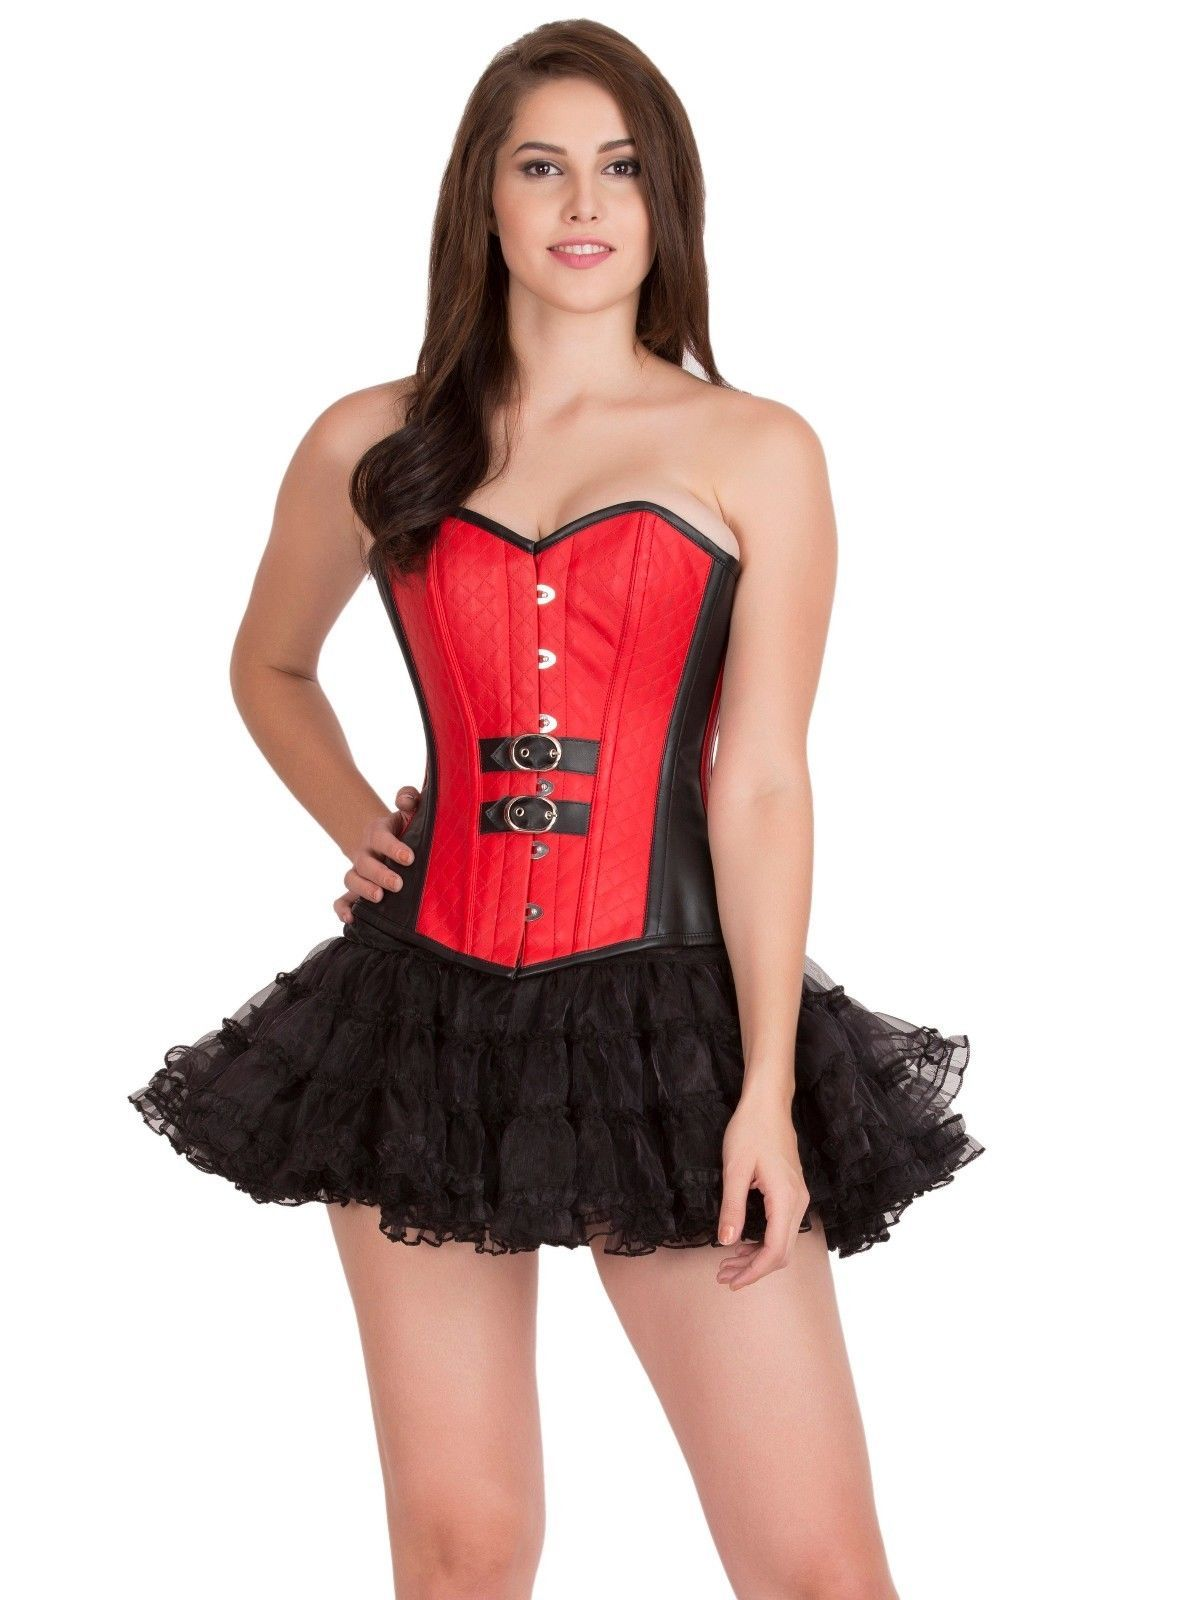 Red Black Leather Steampunk Gothic Overbust & Tissue Tutu Skirt Corset Dress